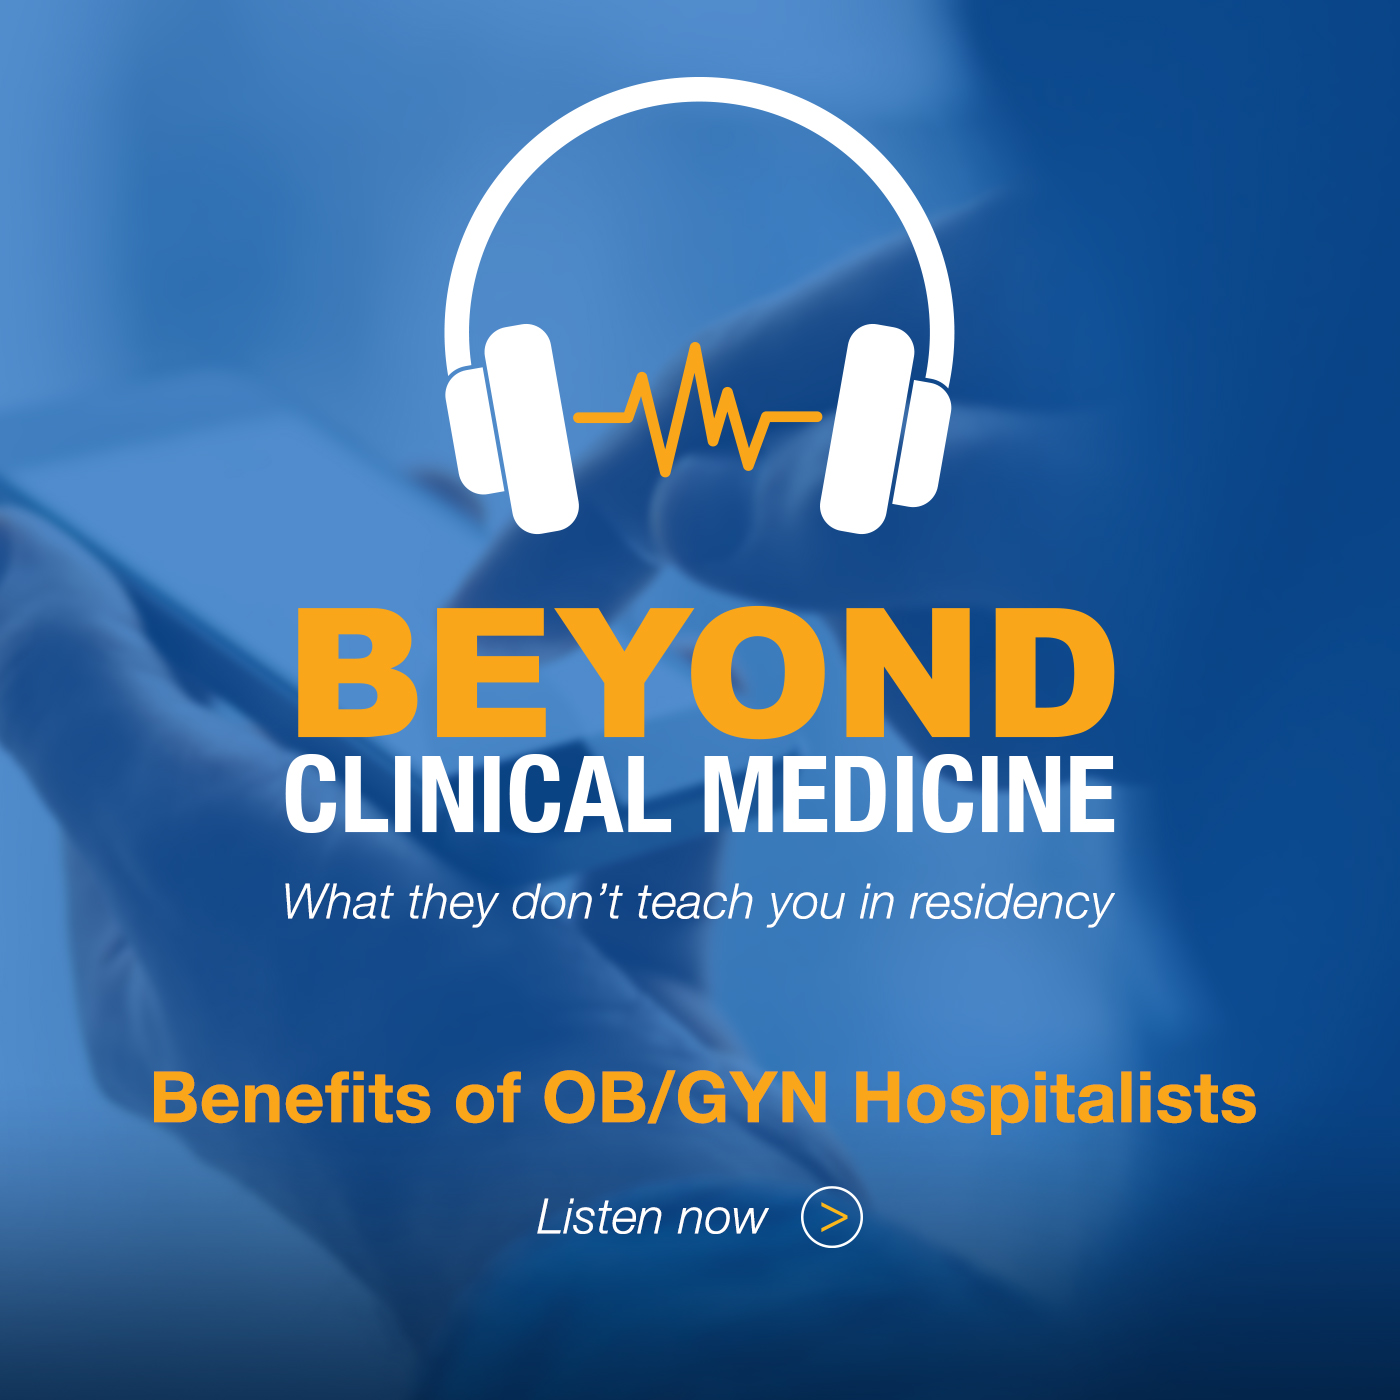 Beyond Clinical Medicine Episode 2: Benefits of OB/GYN Hospitalists